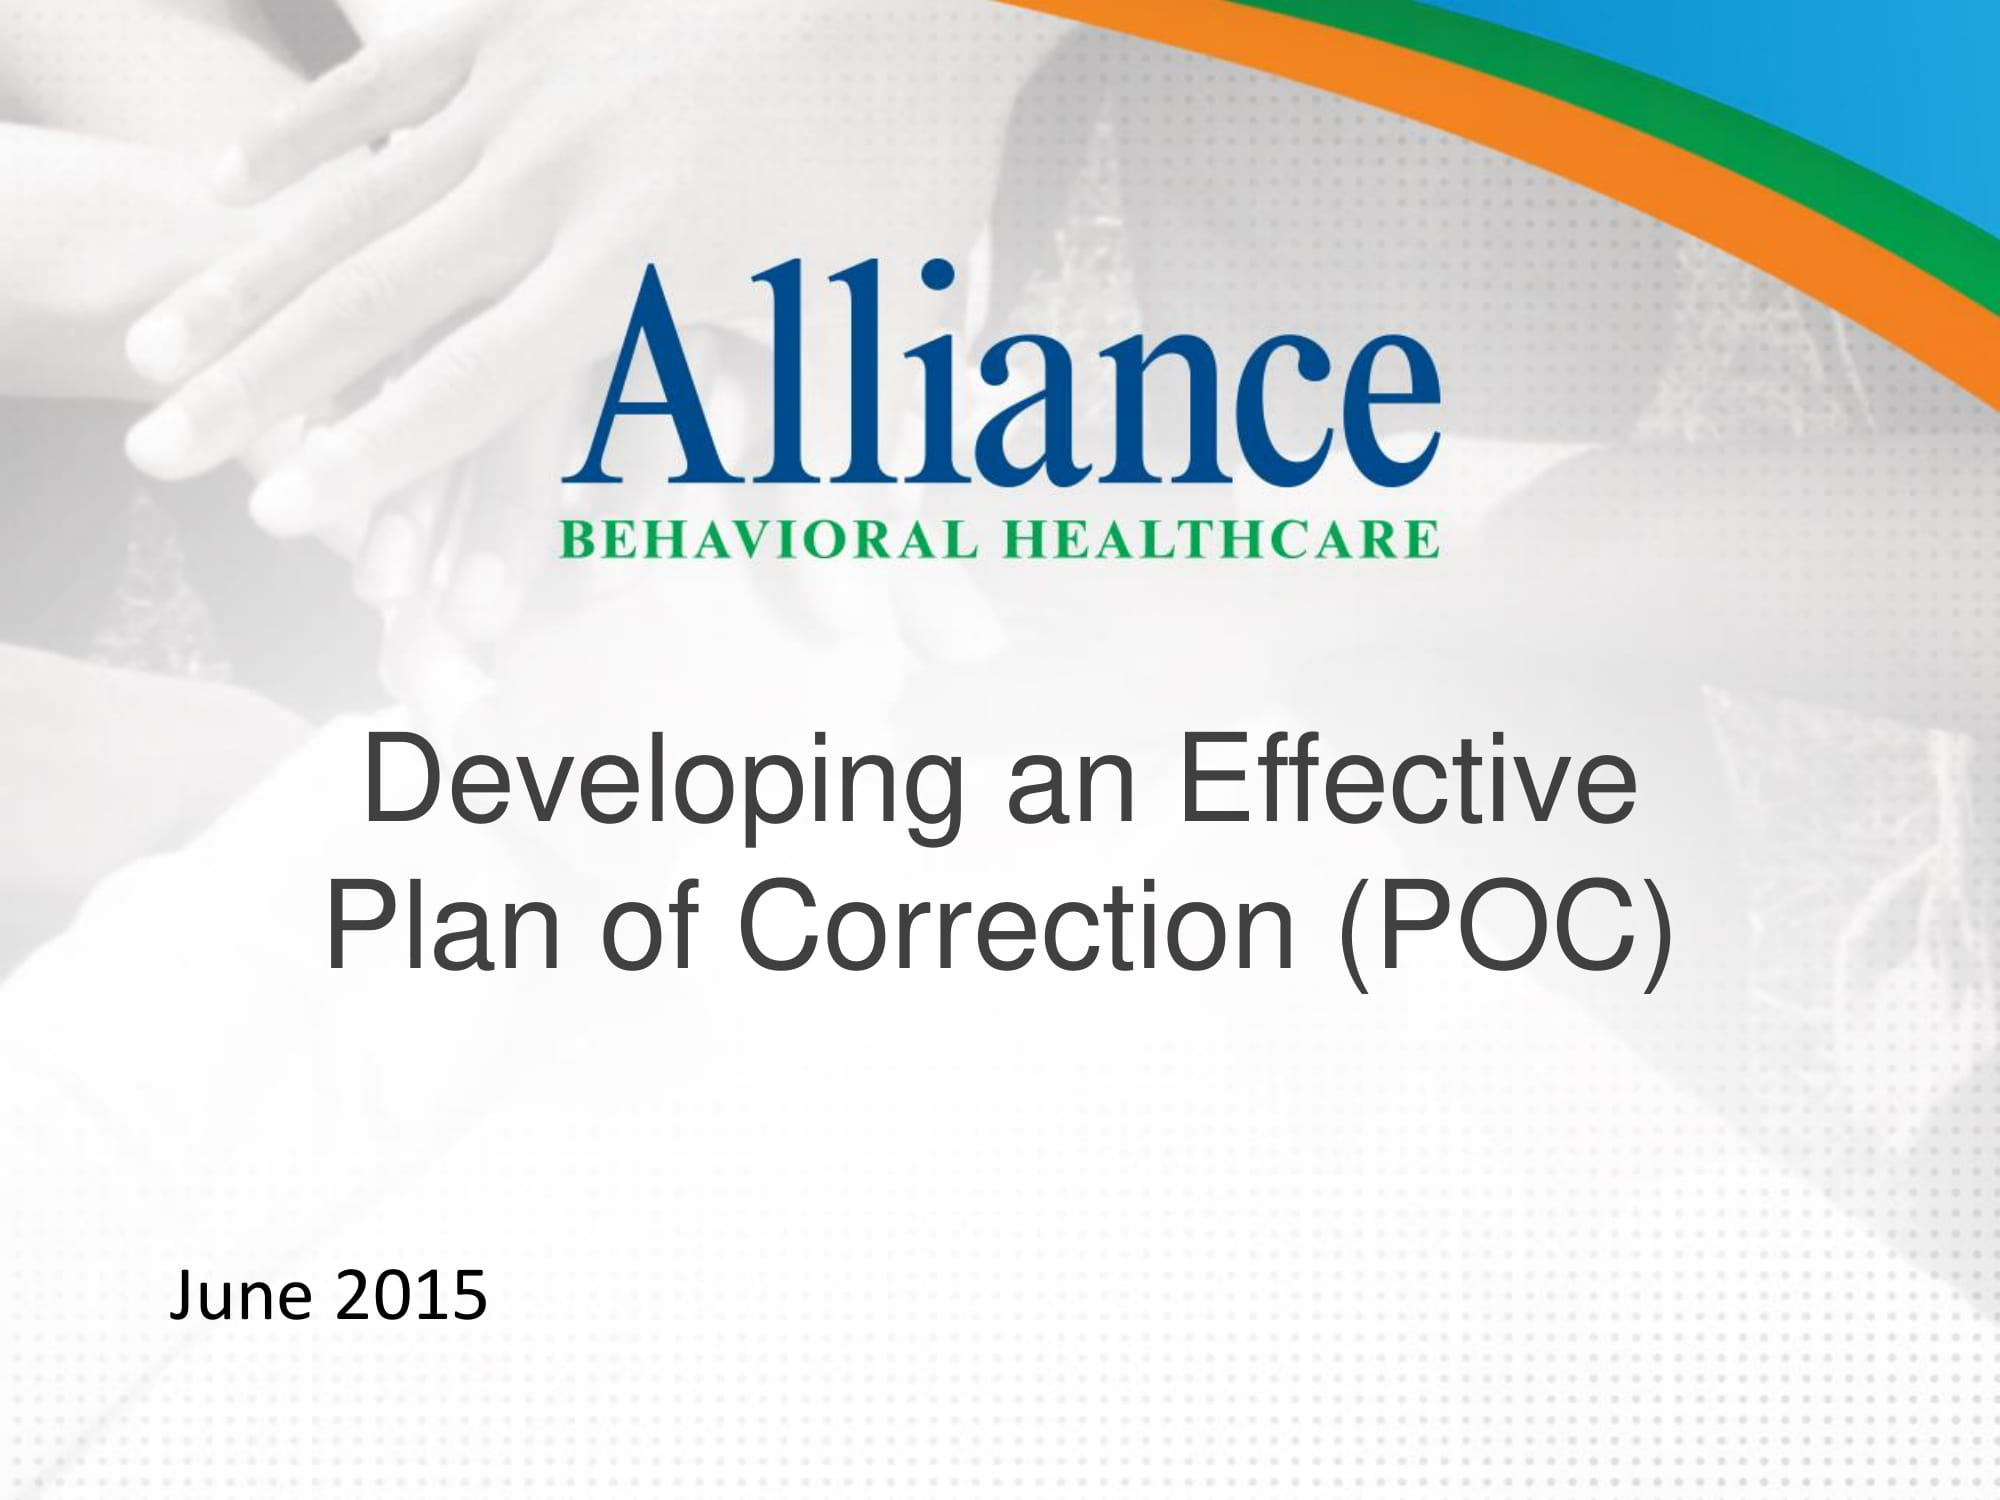 effective plan of correction development guide example 01